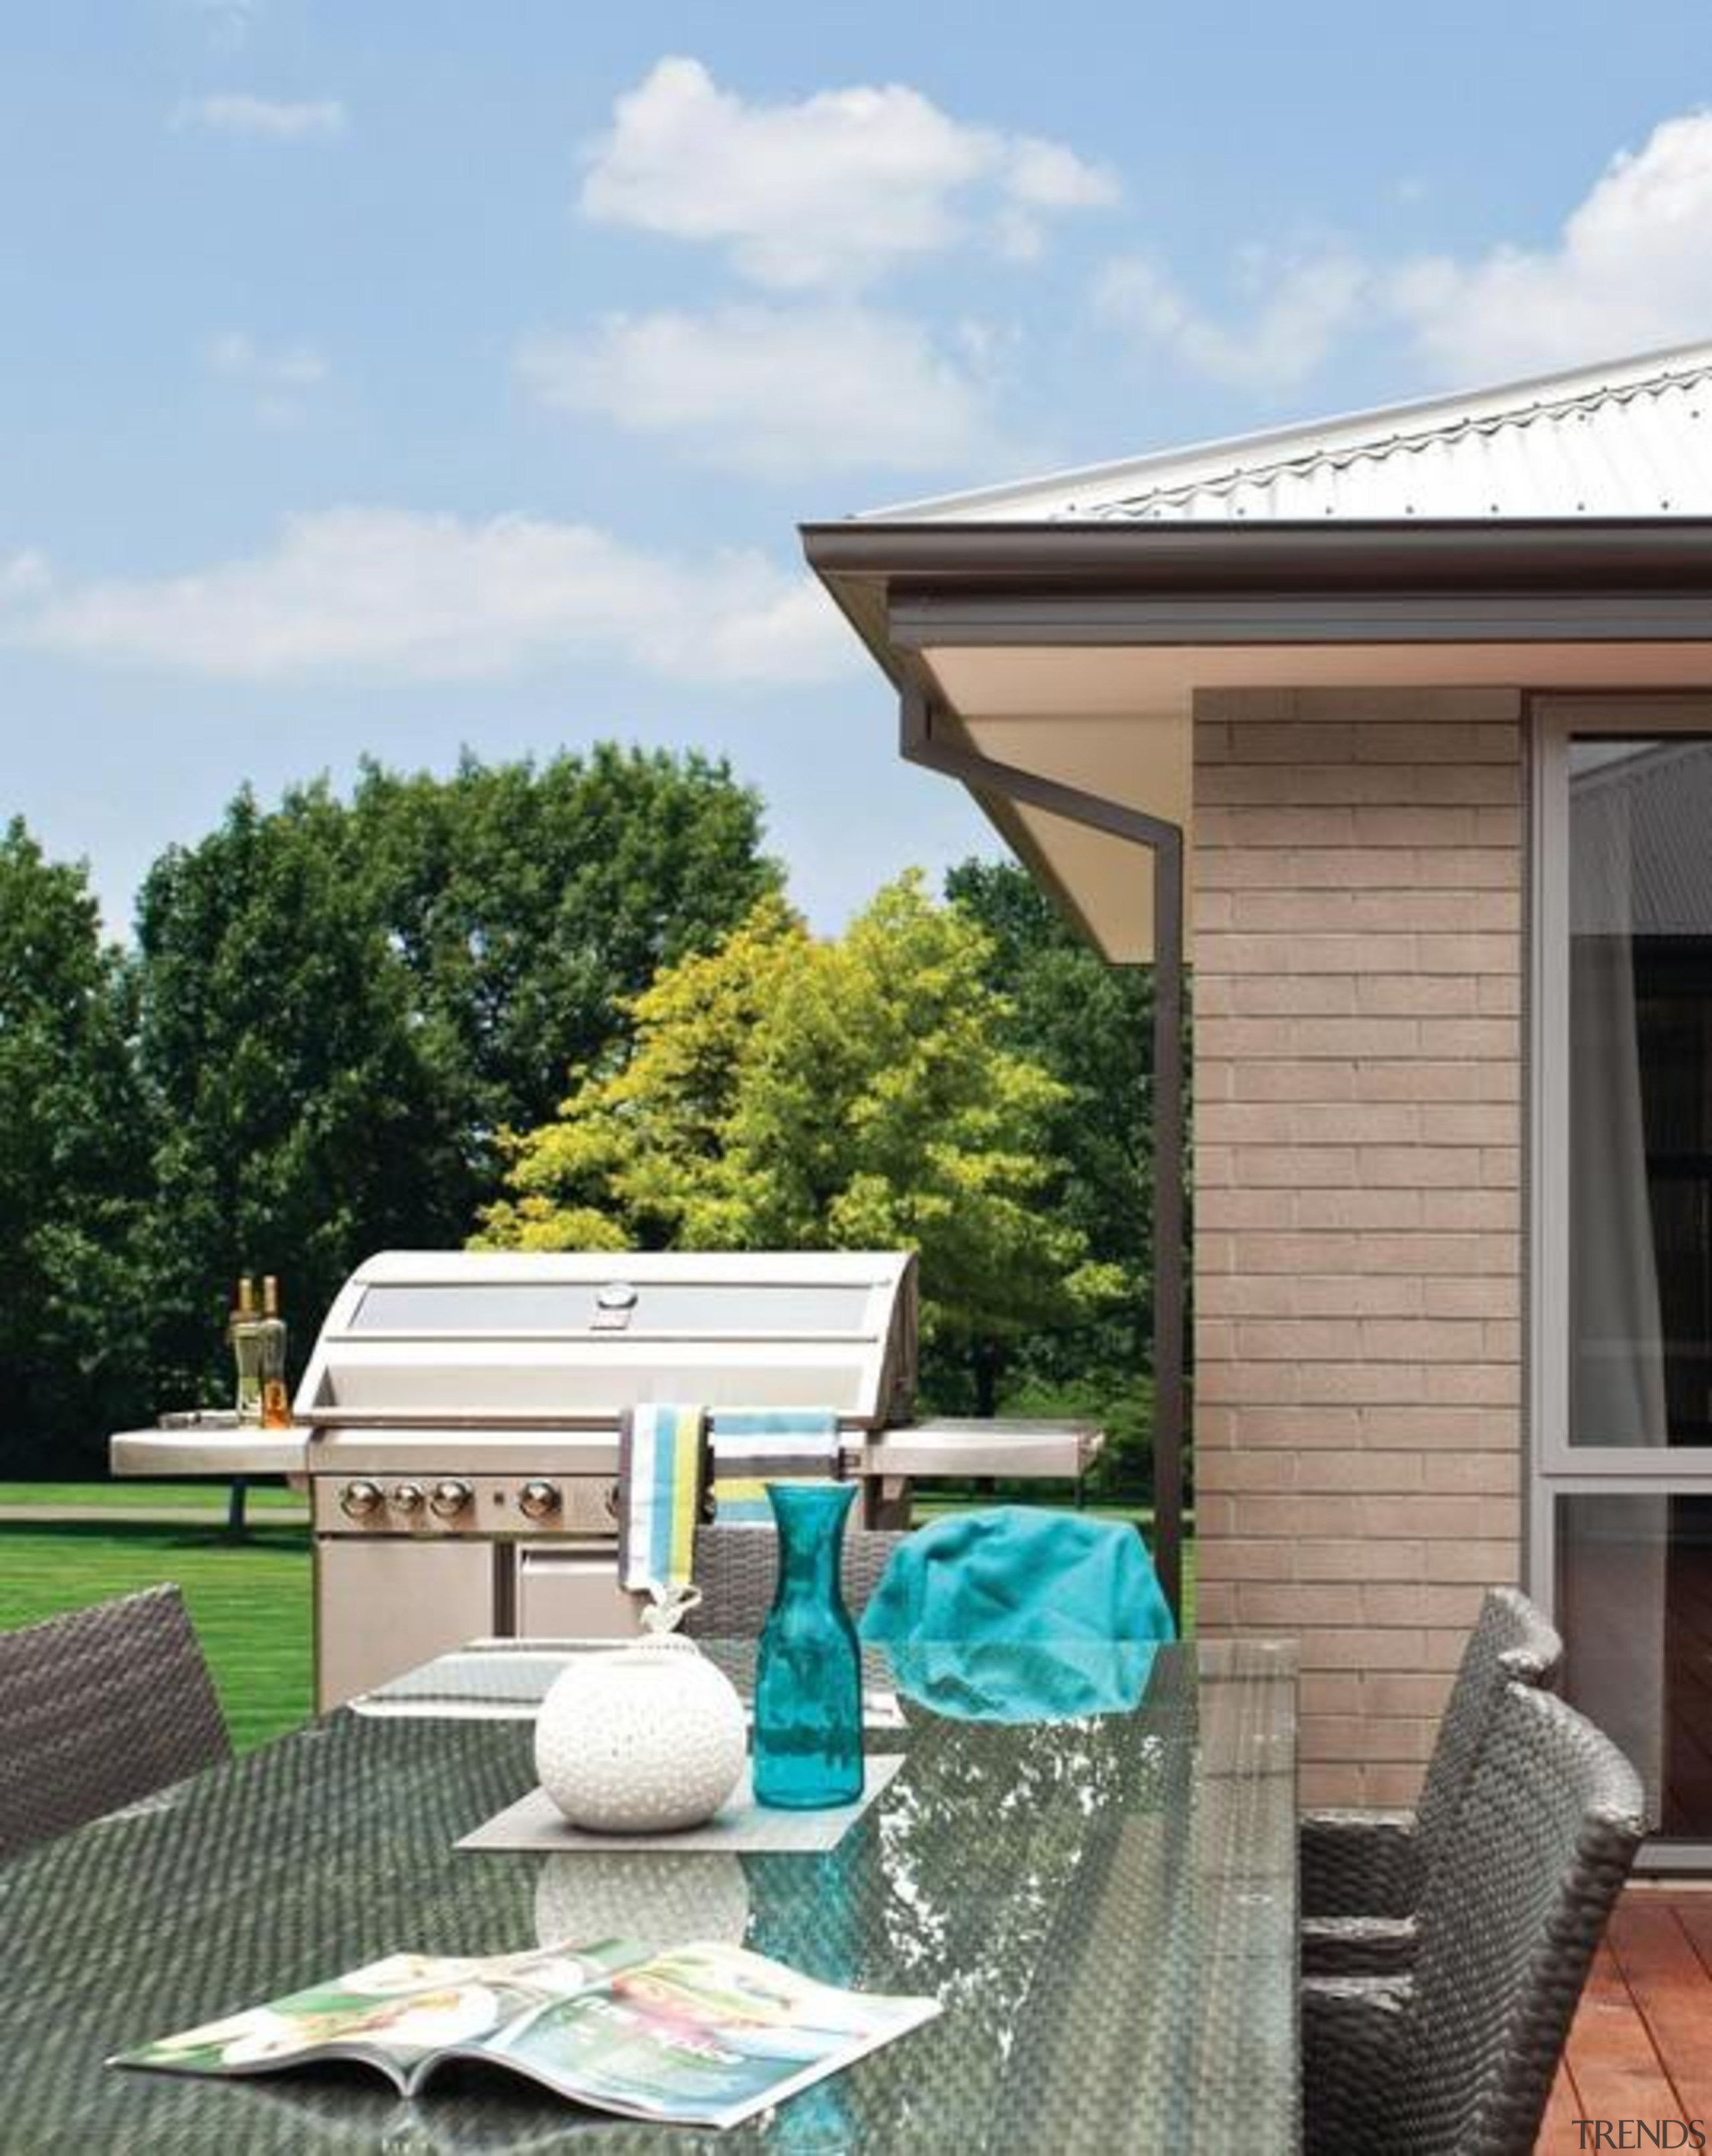 When selecting materials for a new home it backyard, home, house, outdoor structure, property, real estate, roof, gray, white